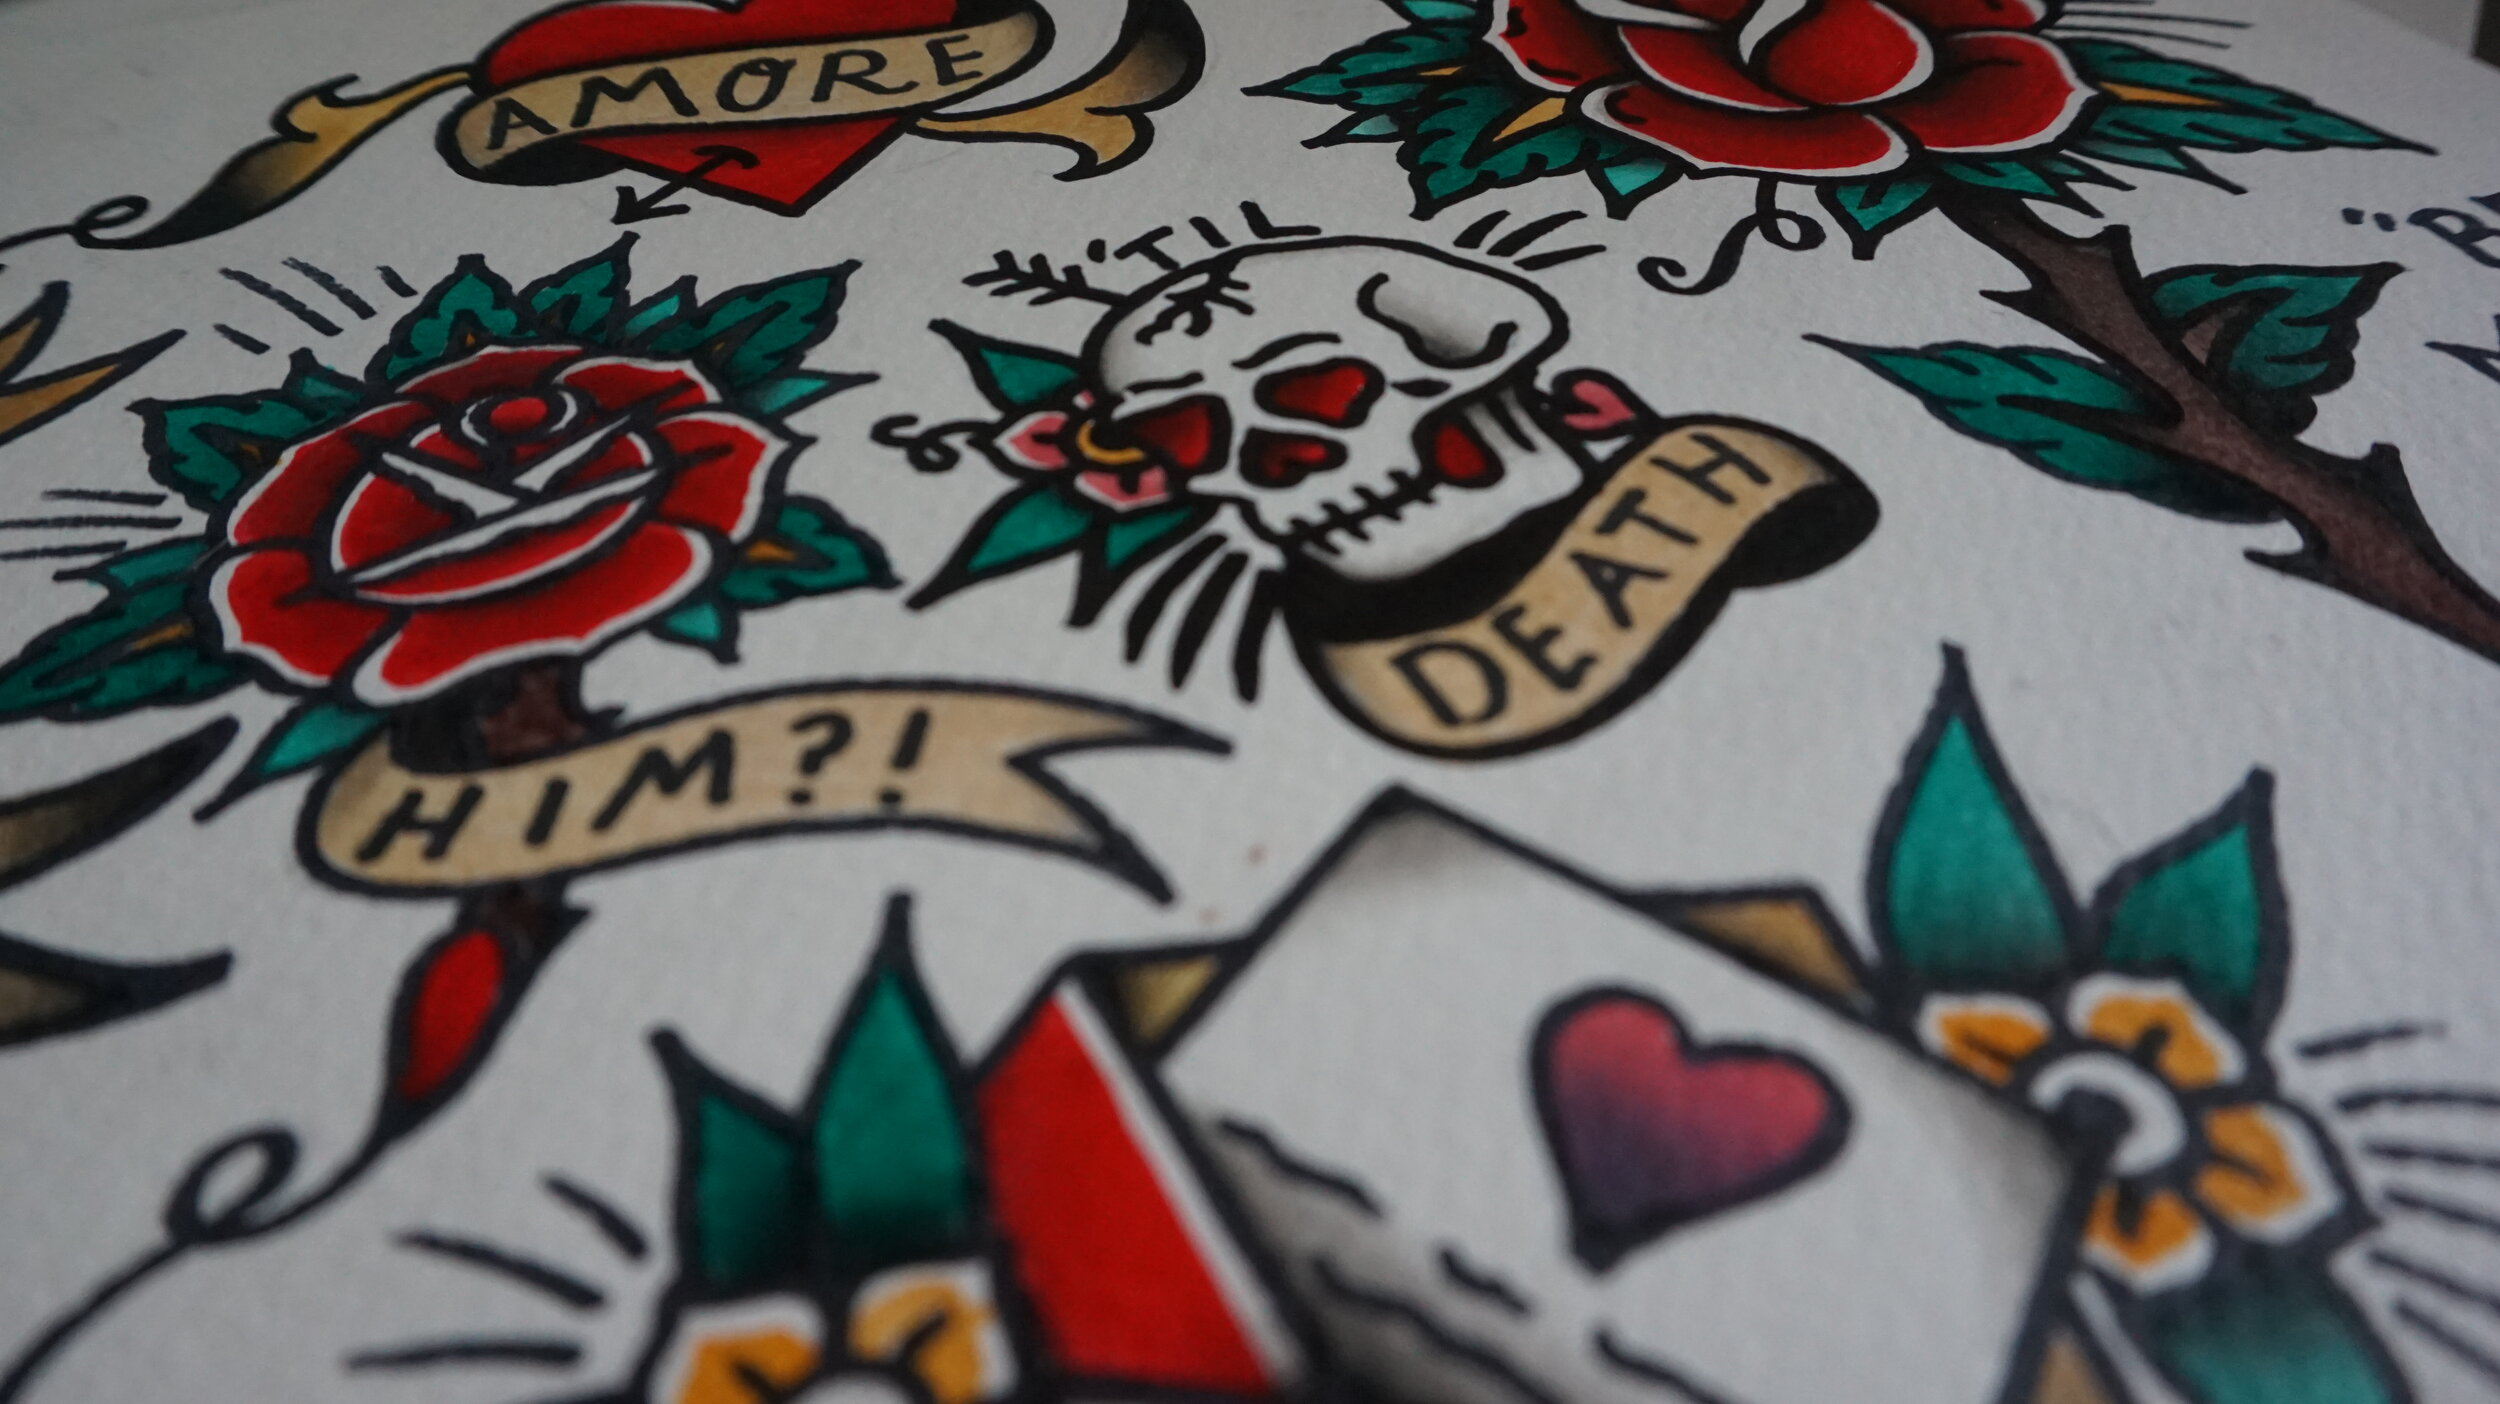 """""""What each tattoo is expressing is not really the interesting aesthetic value that's being communicated. Rather, what is interesting about a tattooed body in public is that the tattooed body says 'art is a democratic spectacle that has immediate, lasting impact on people's lives.' In other words, """"art has consequences."""" -"""